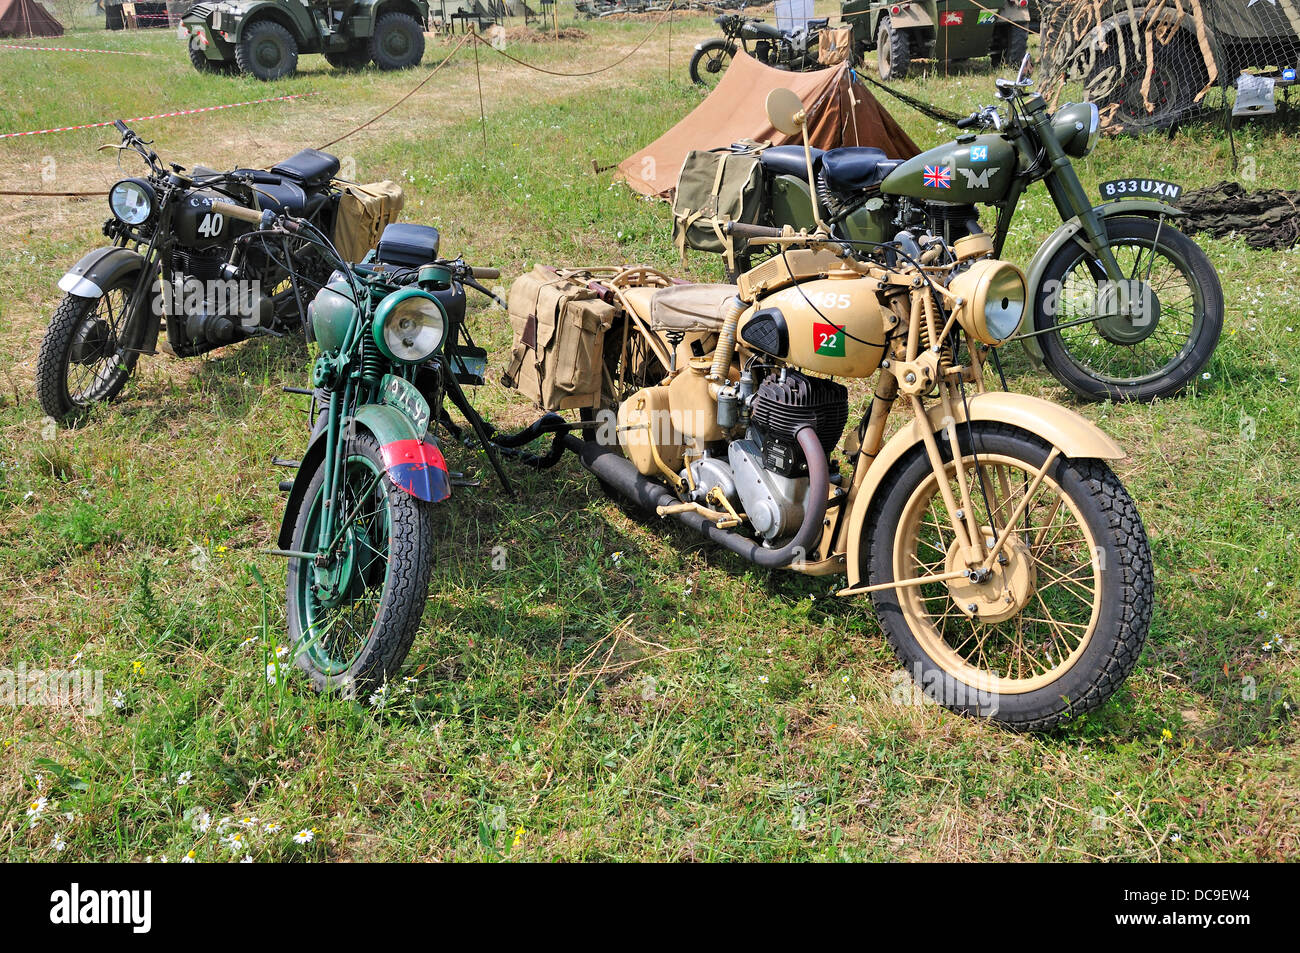 War and Peace Revival, July 2013. Folkestone Racecourse, Kent, England, UK. Military motorcycles - Stock Image